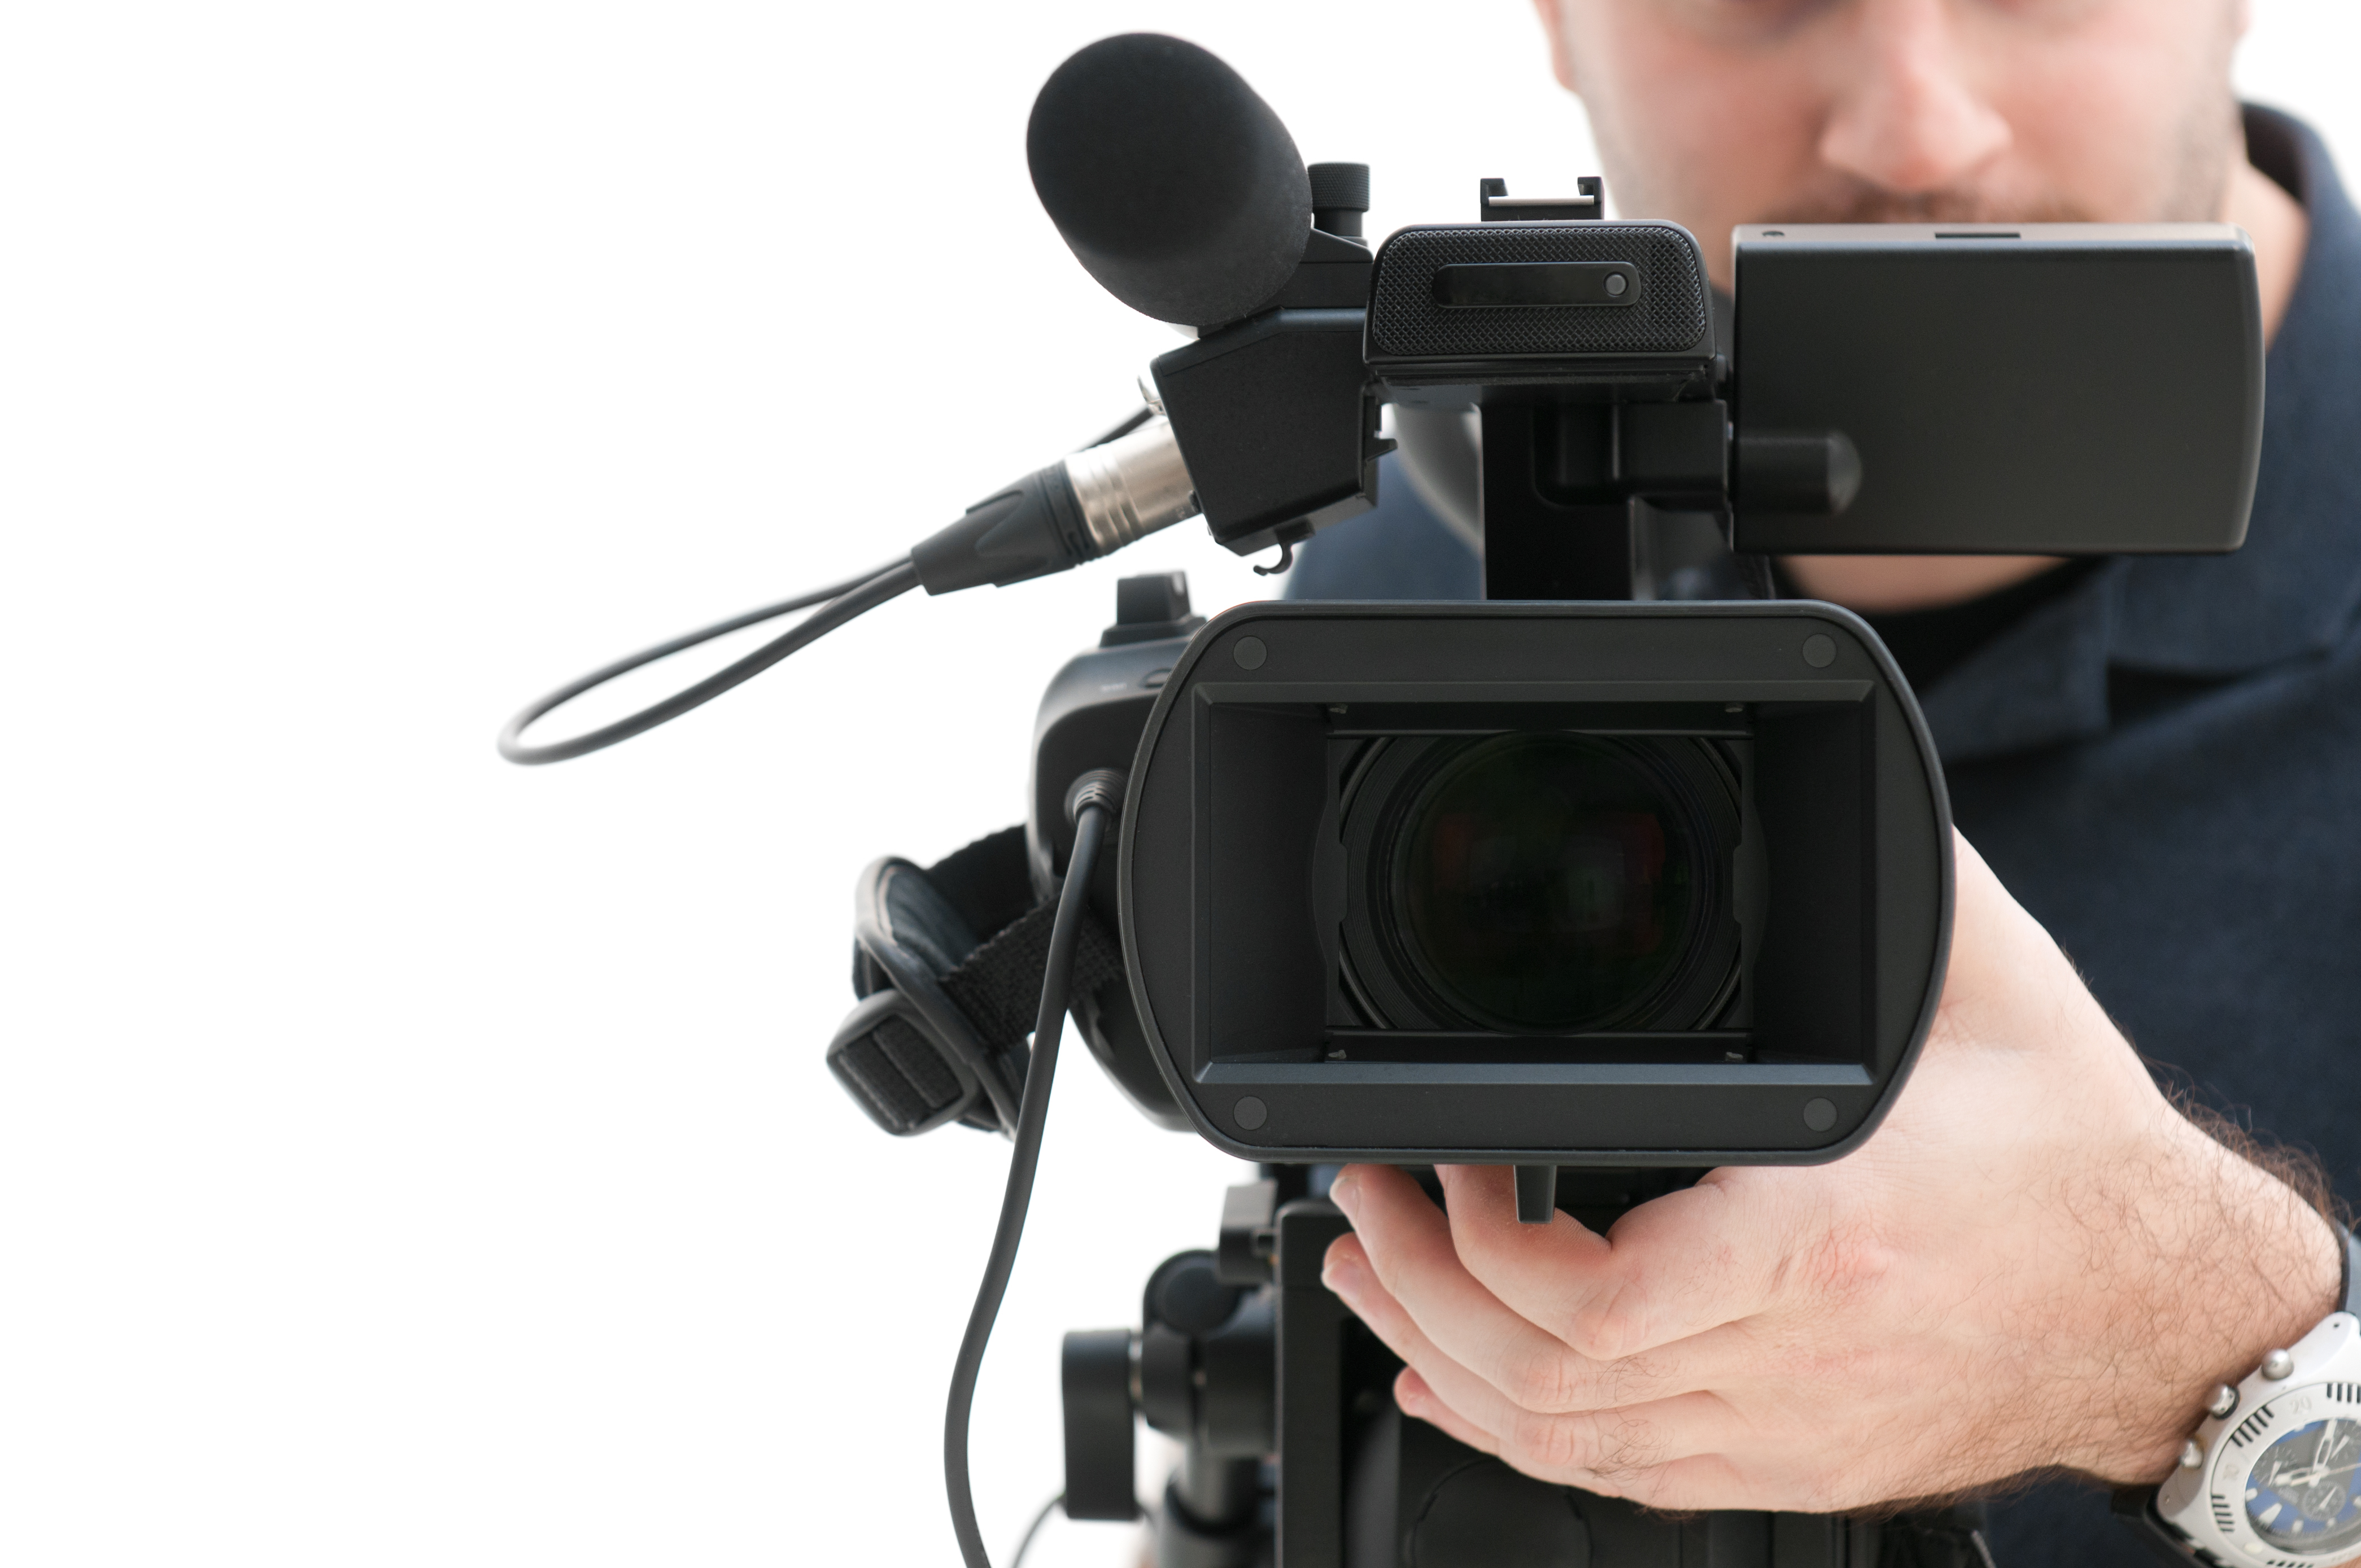 GM Video Productions